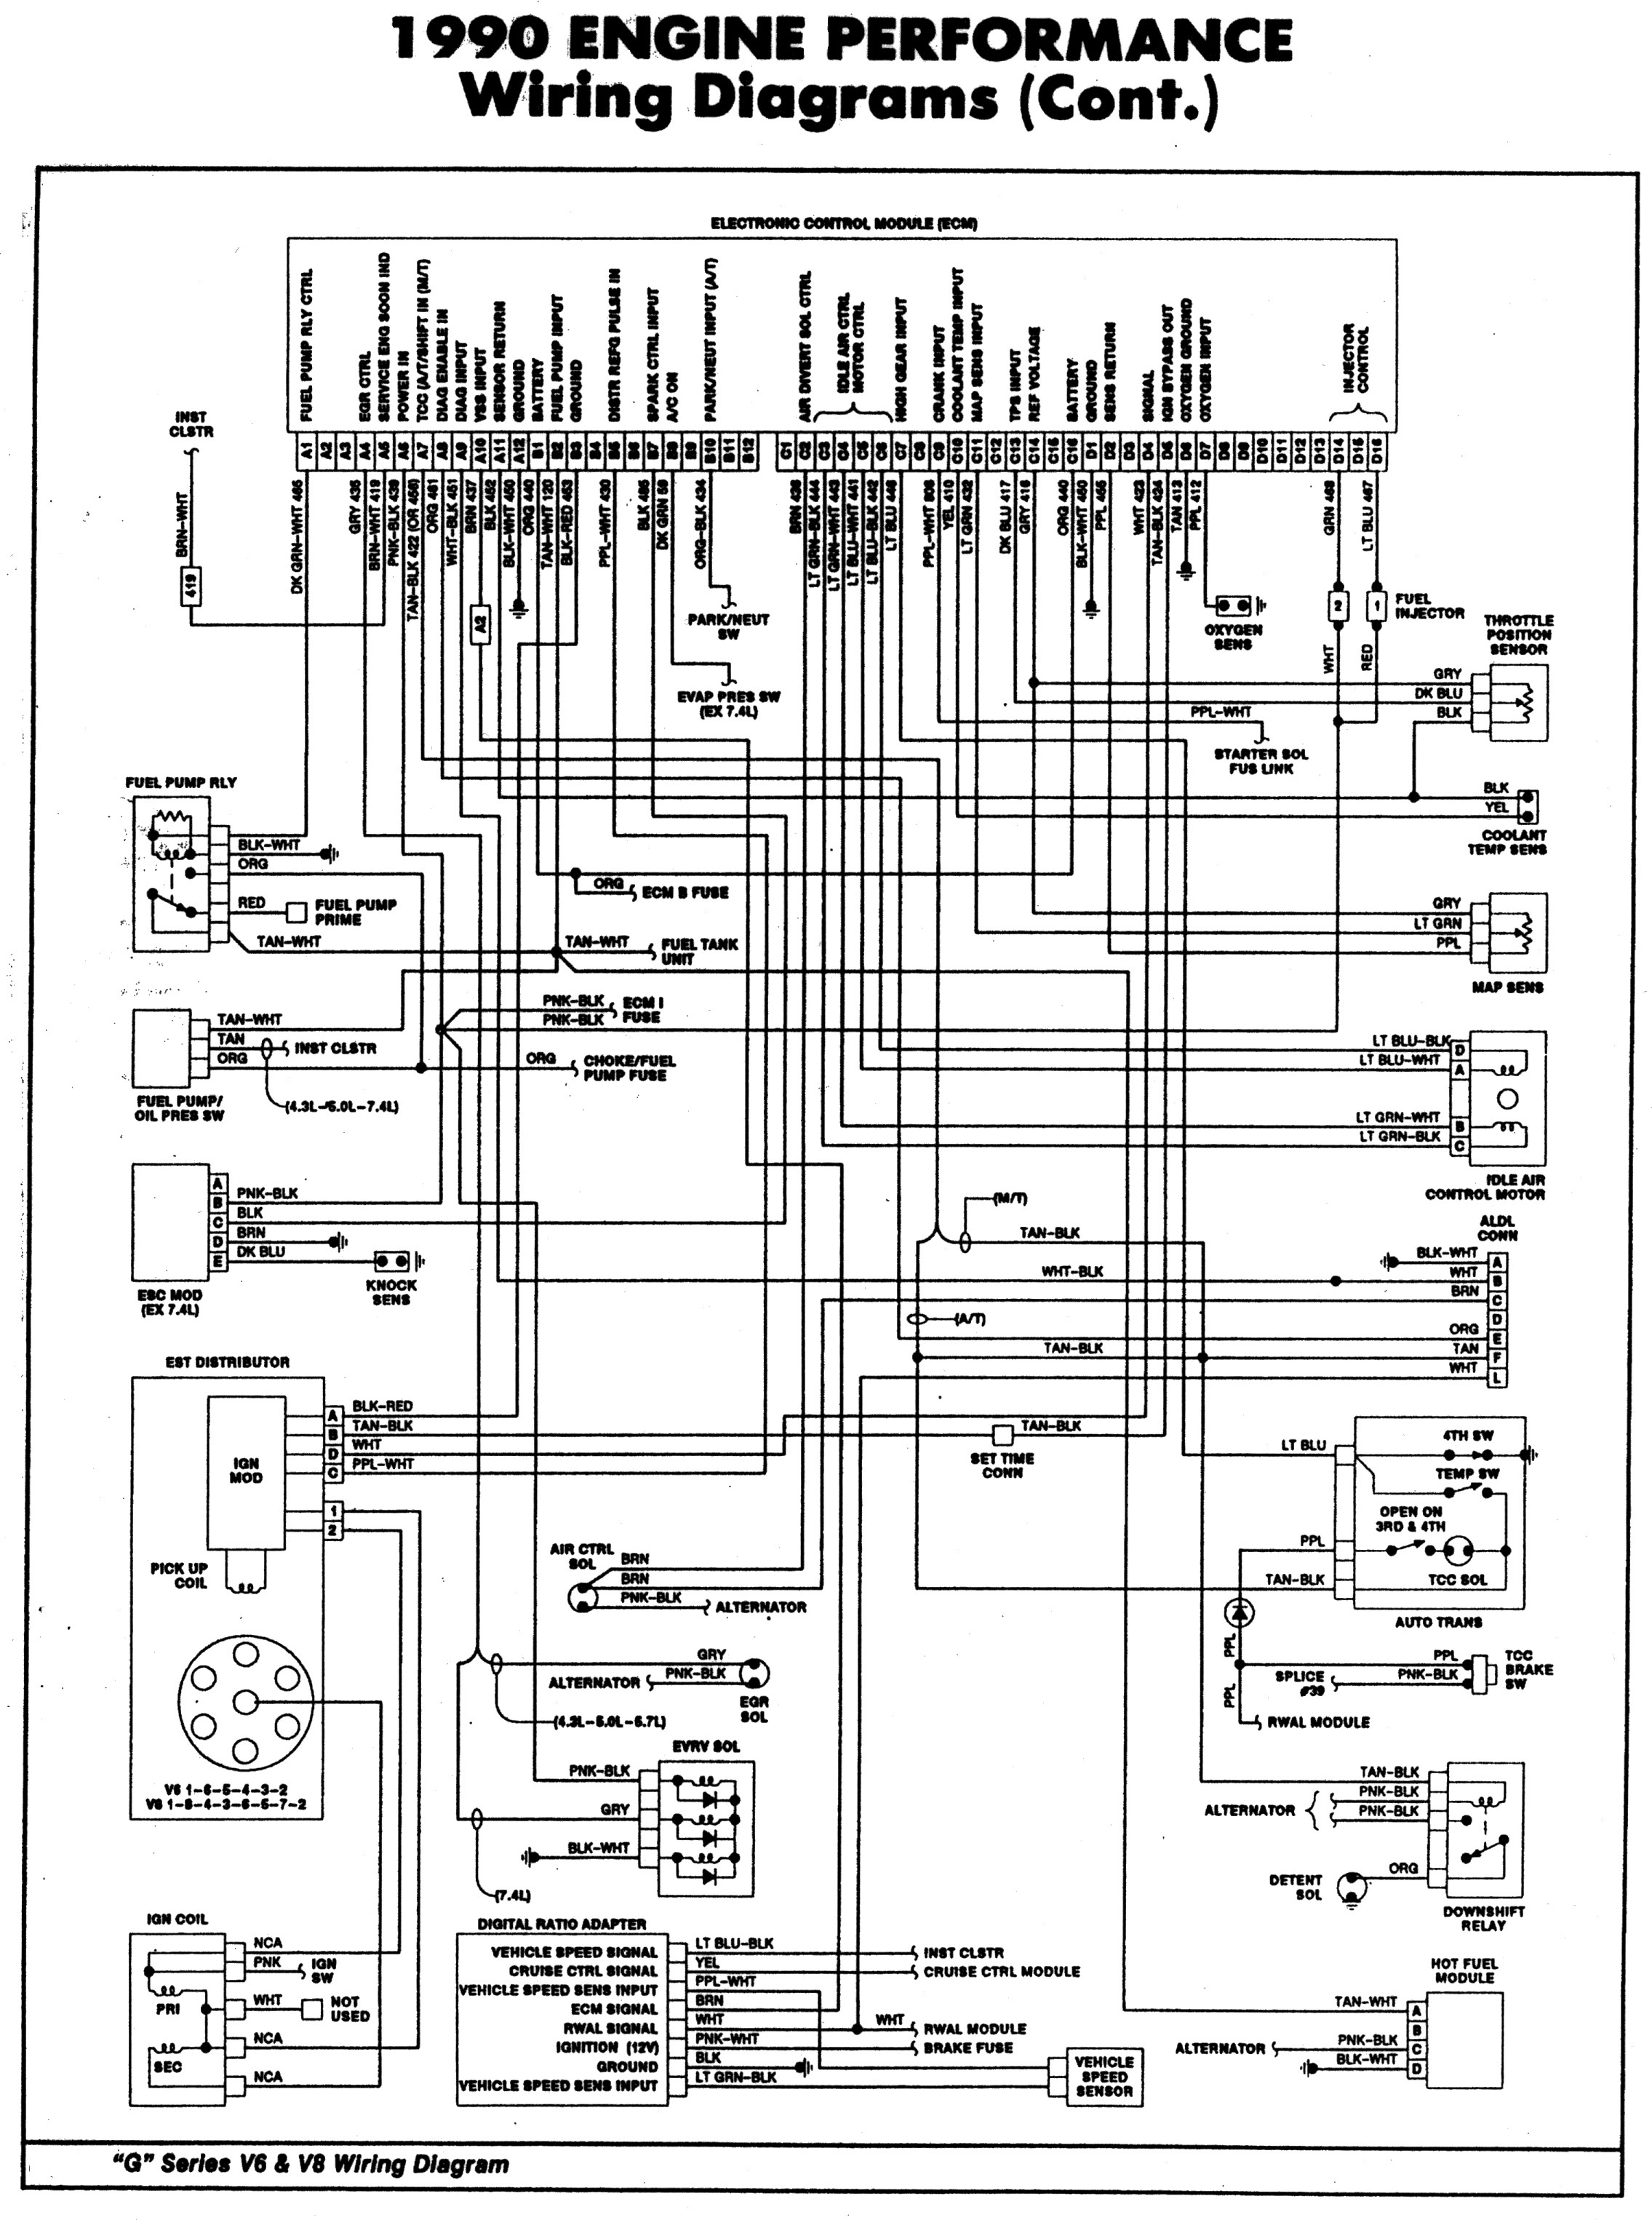 ef37611ed0813a39b0823626ba6b2667 454 big block diagram wiring diagram data